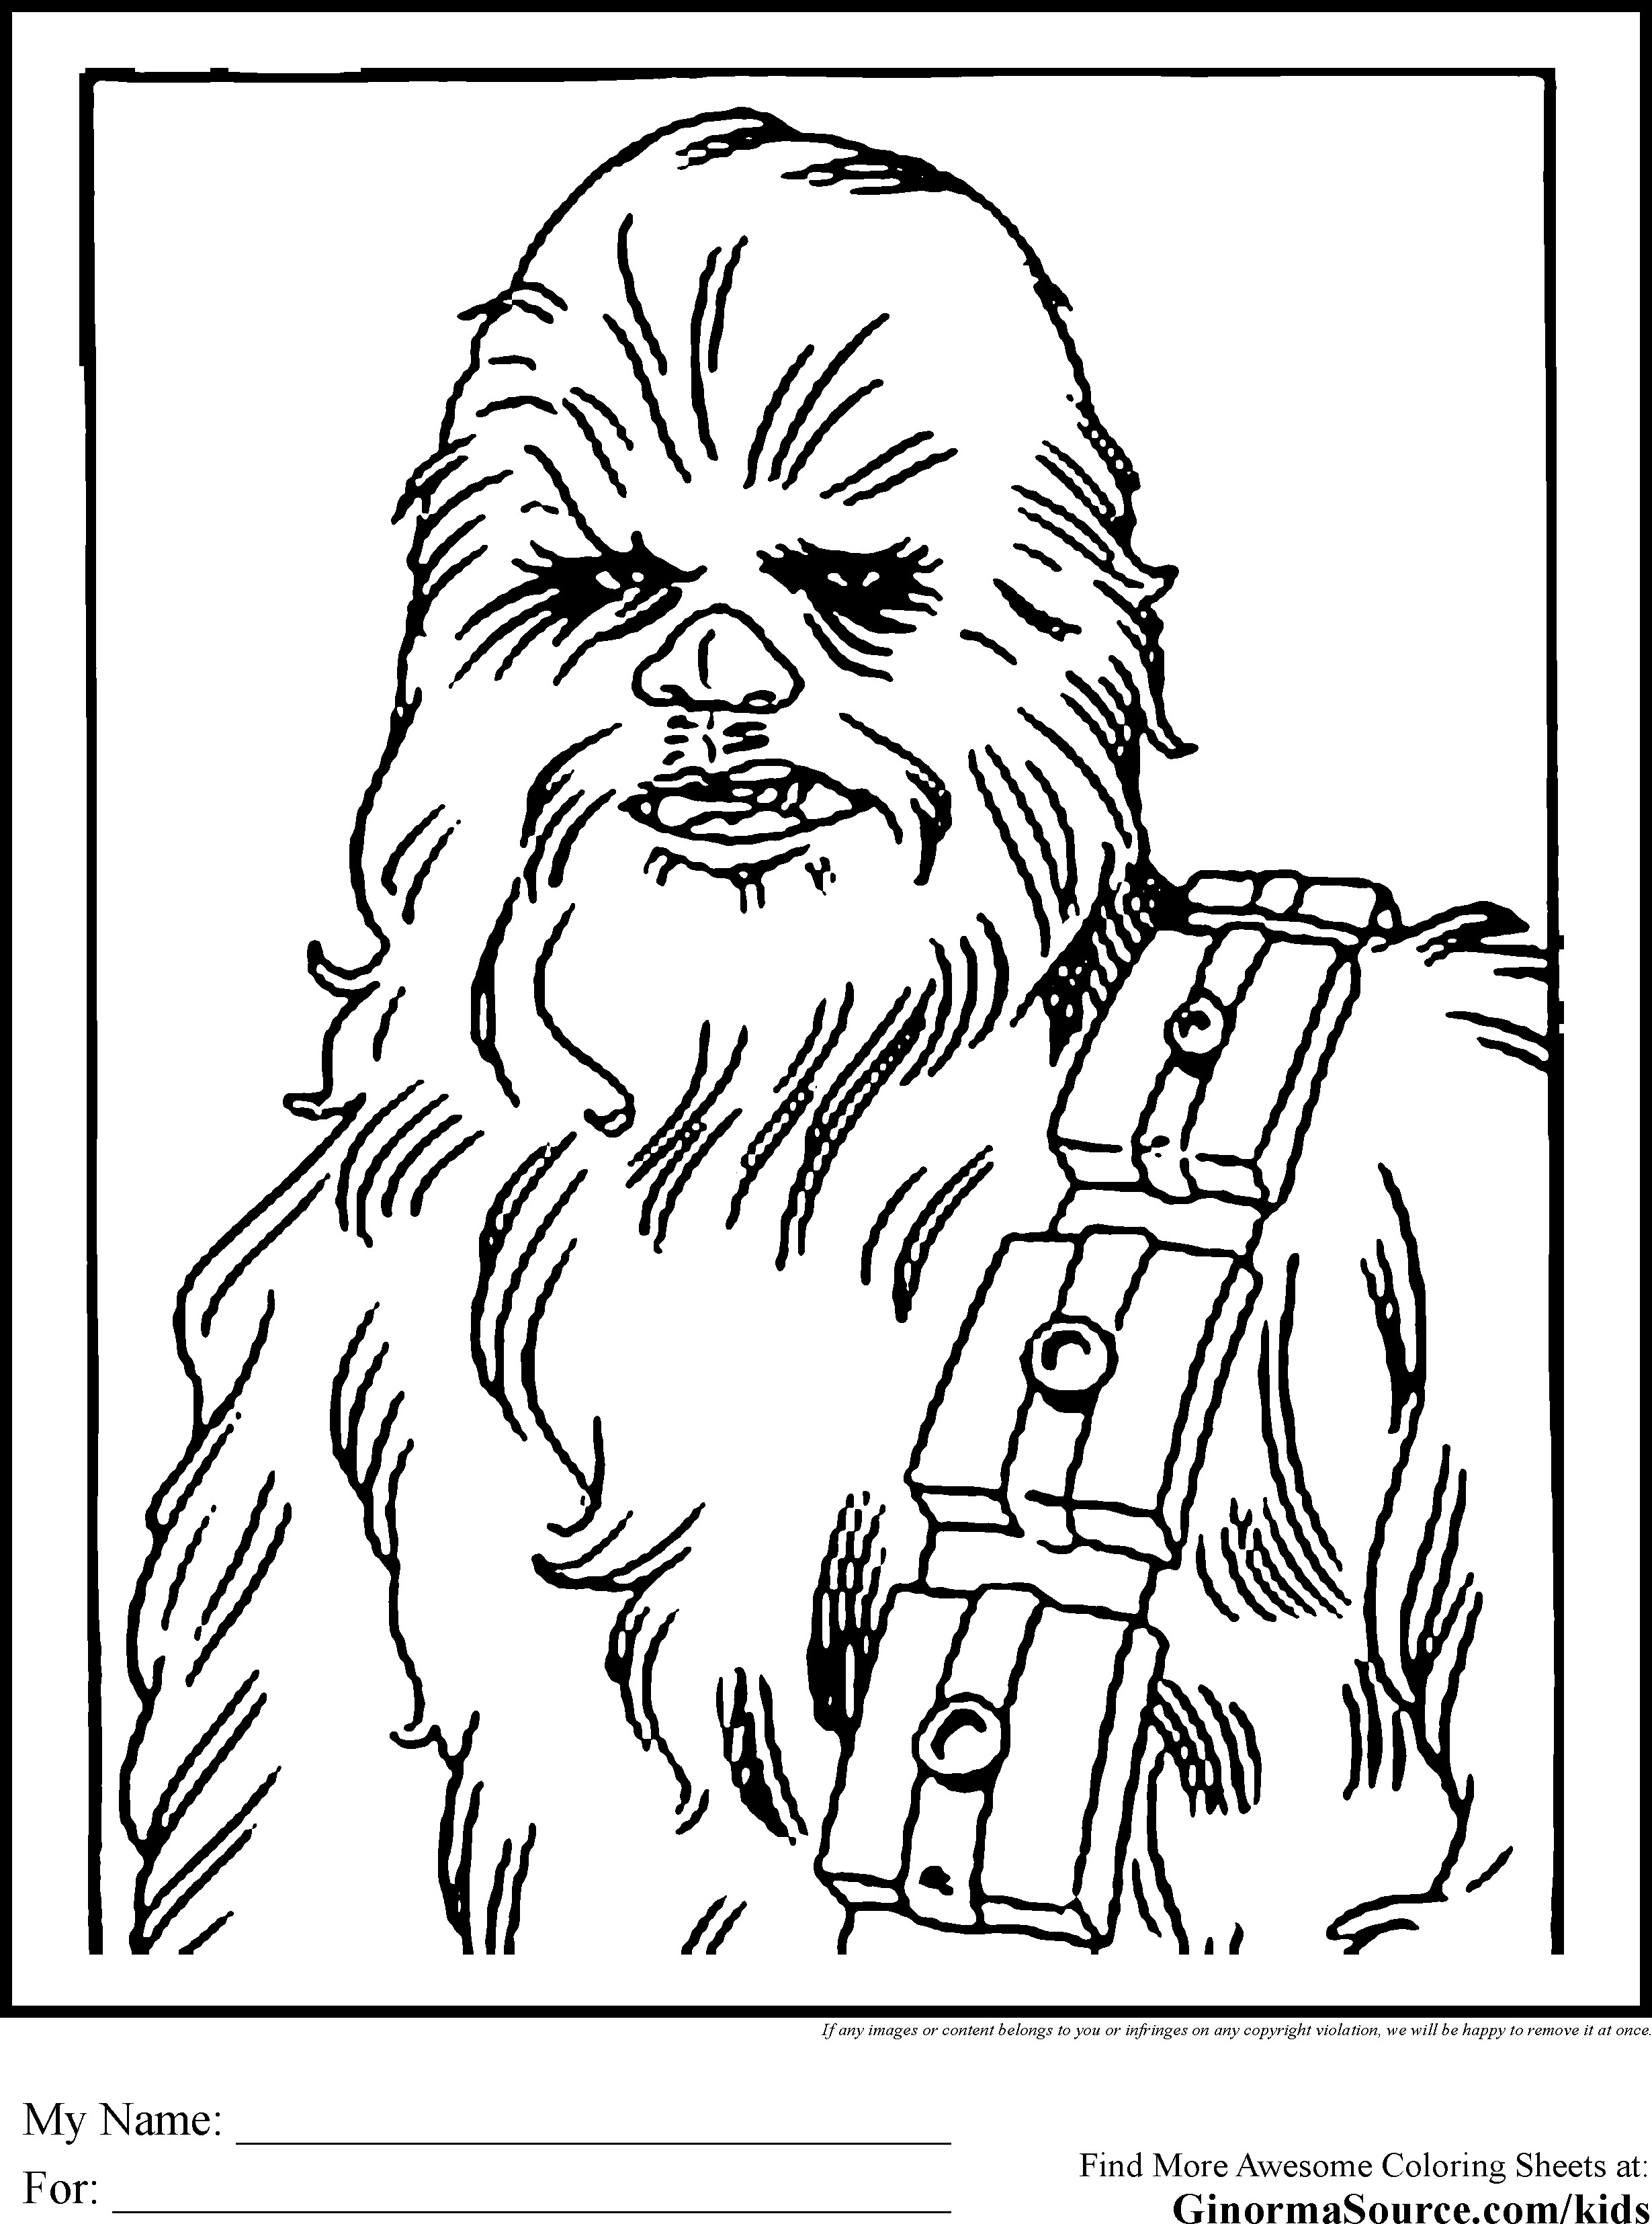 free star wars coloring pages star wars coloring pages coloringrocks star coloring free wars pages